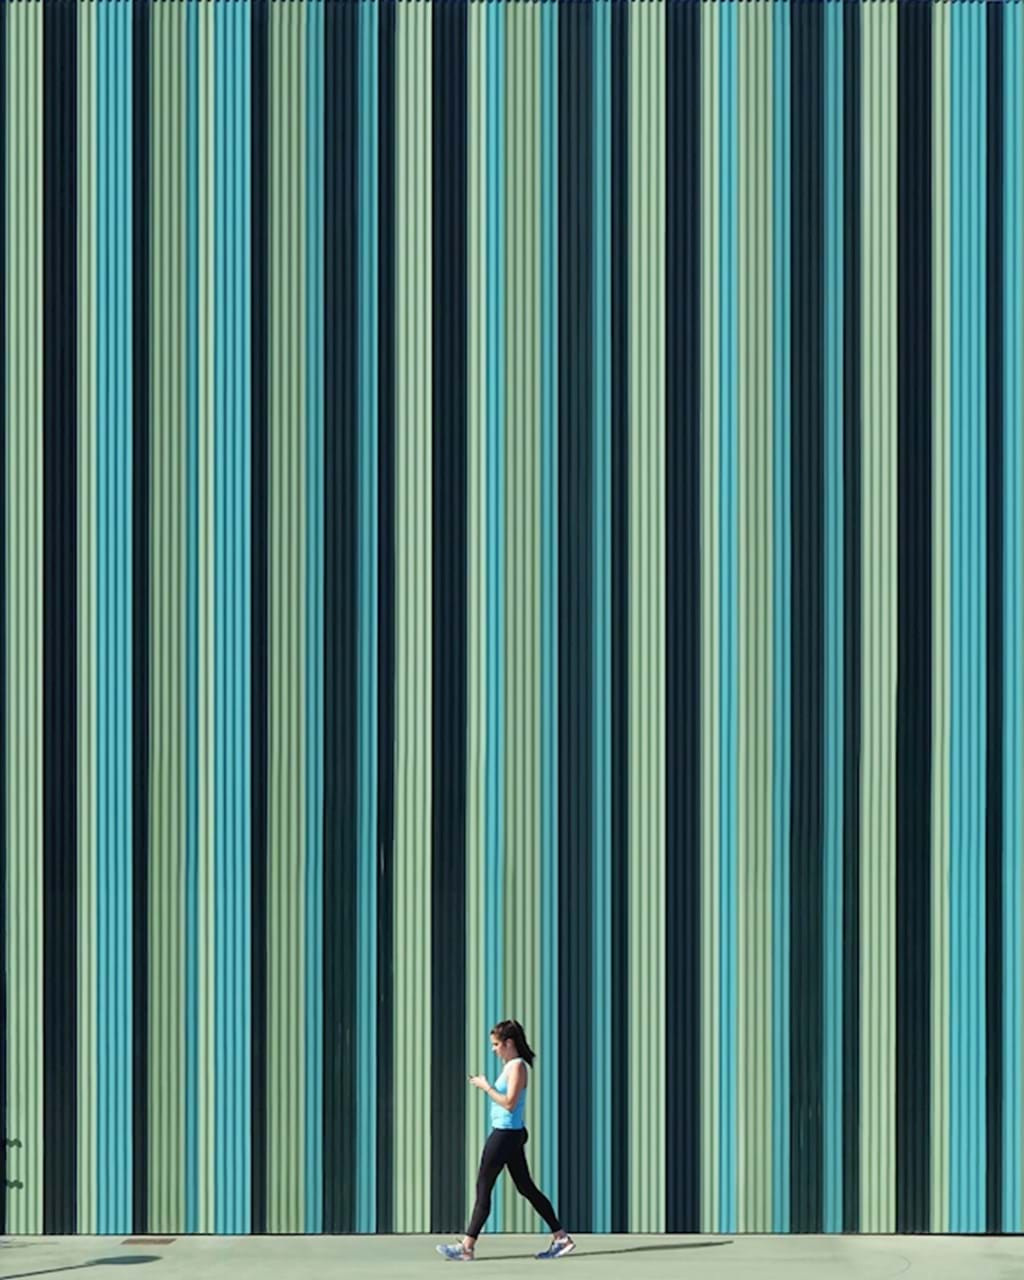 Poster: Bar code - Digital